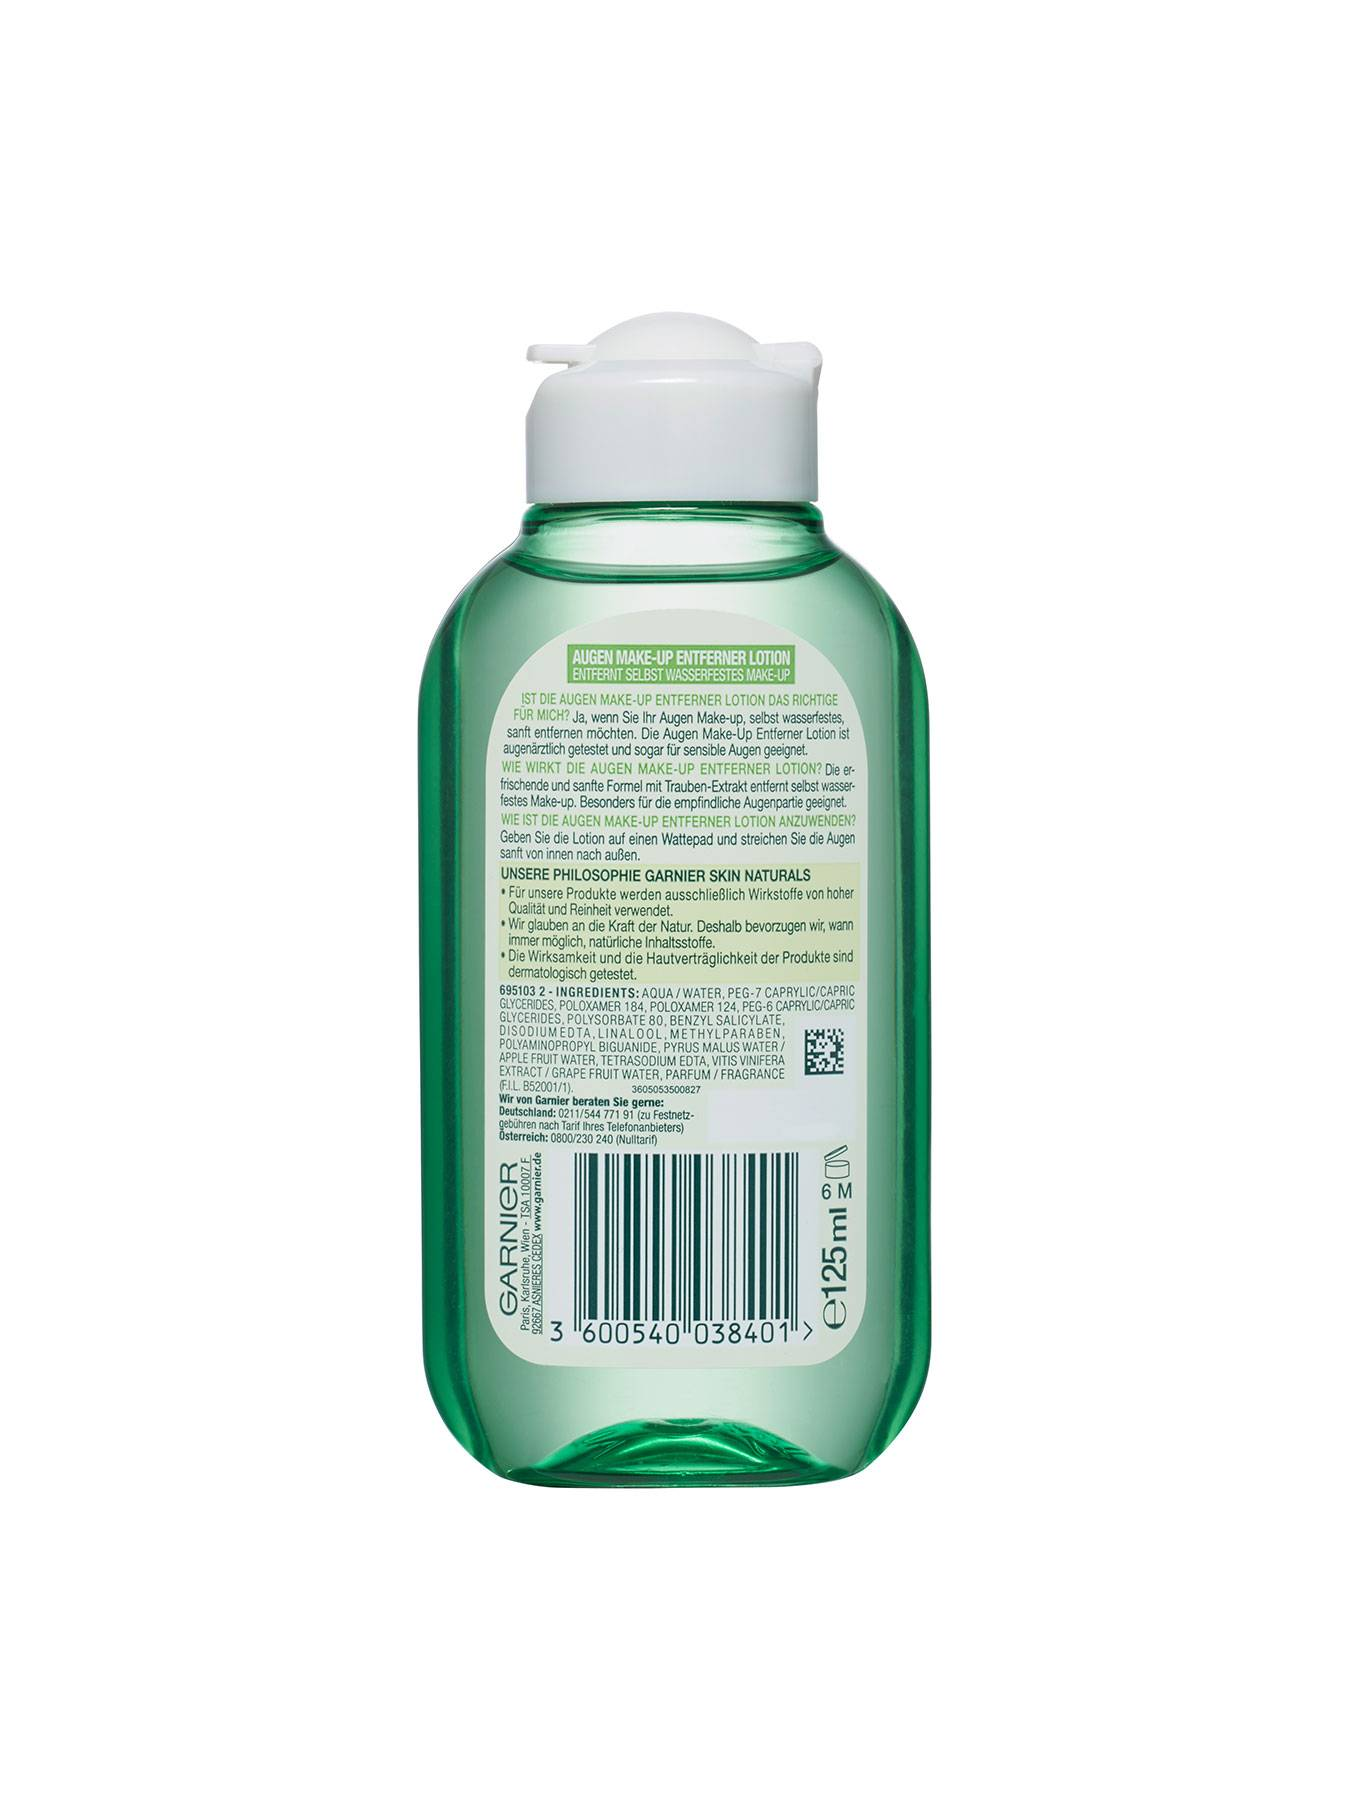 Augen-Make-up-Entferner-Lotion-Clean-and-Fresh-Mizellen-Reinigungswasser-125ml-Rueck-Garnier-DE-gr